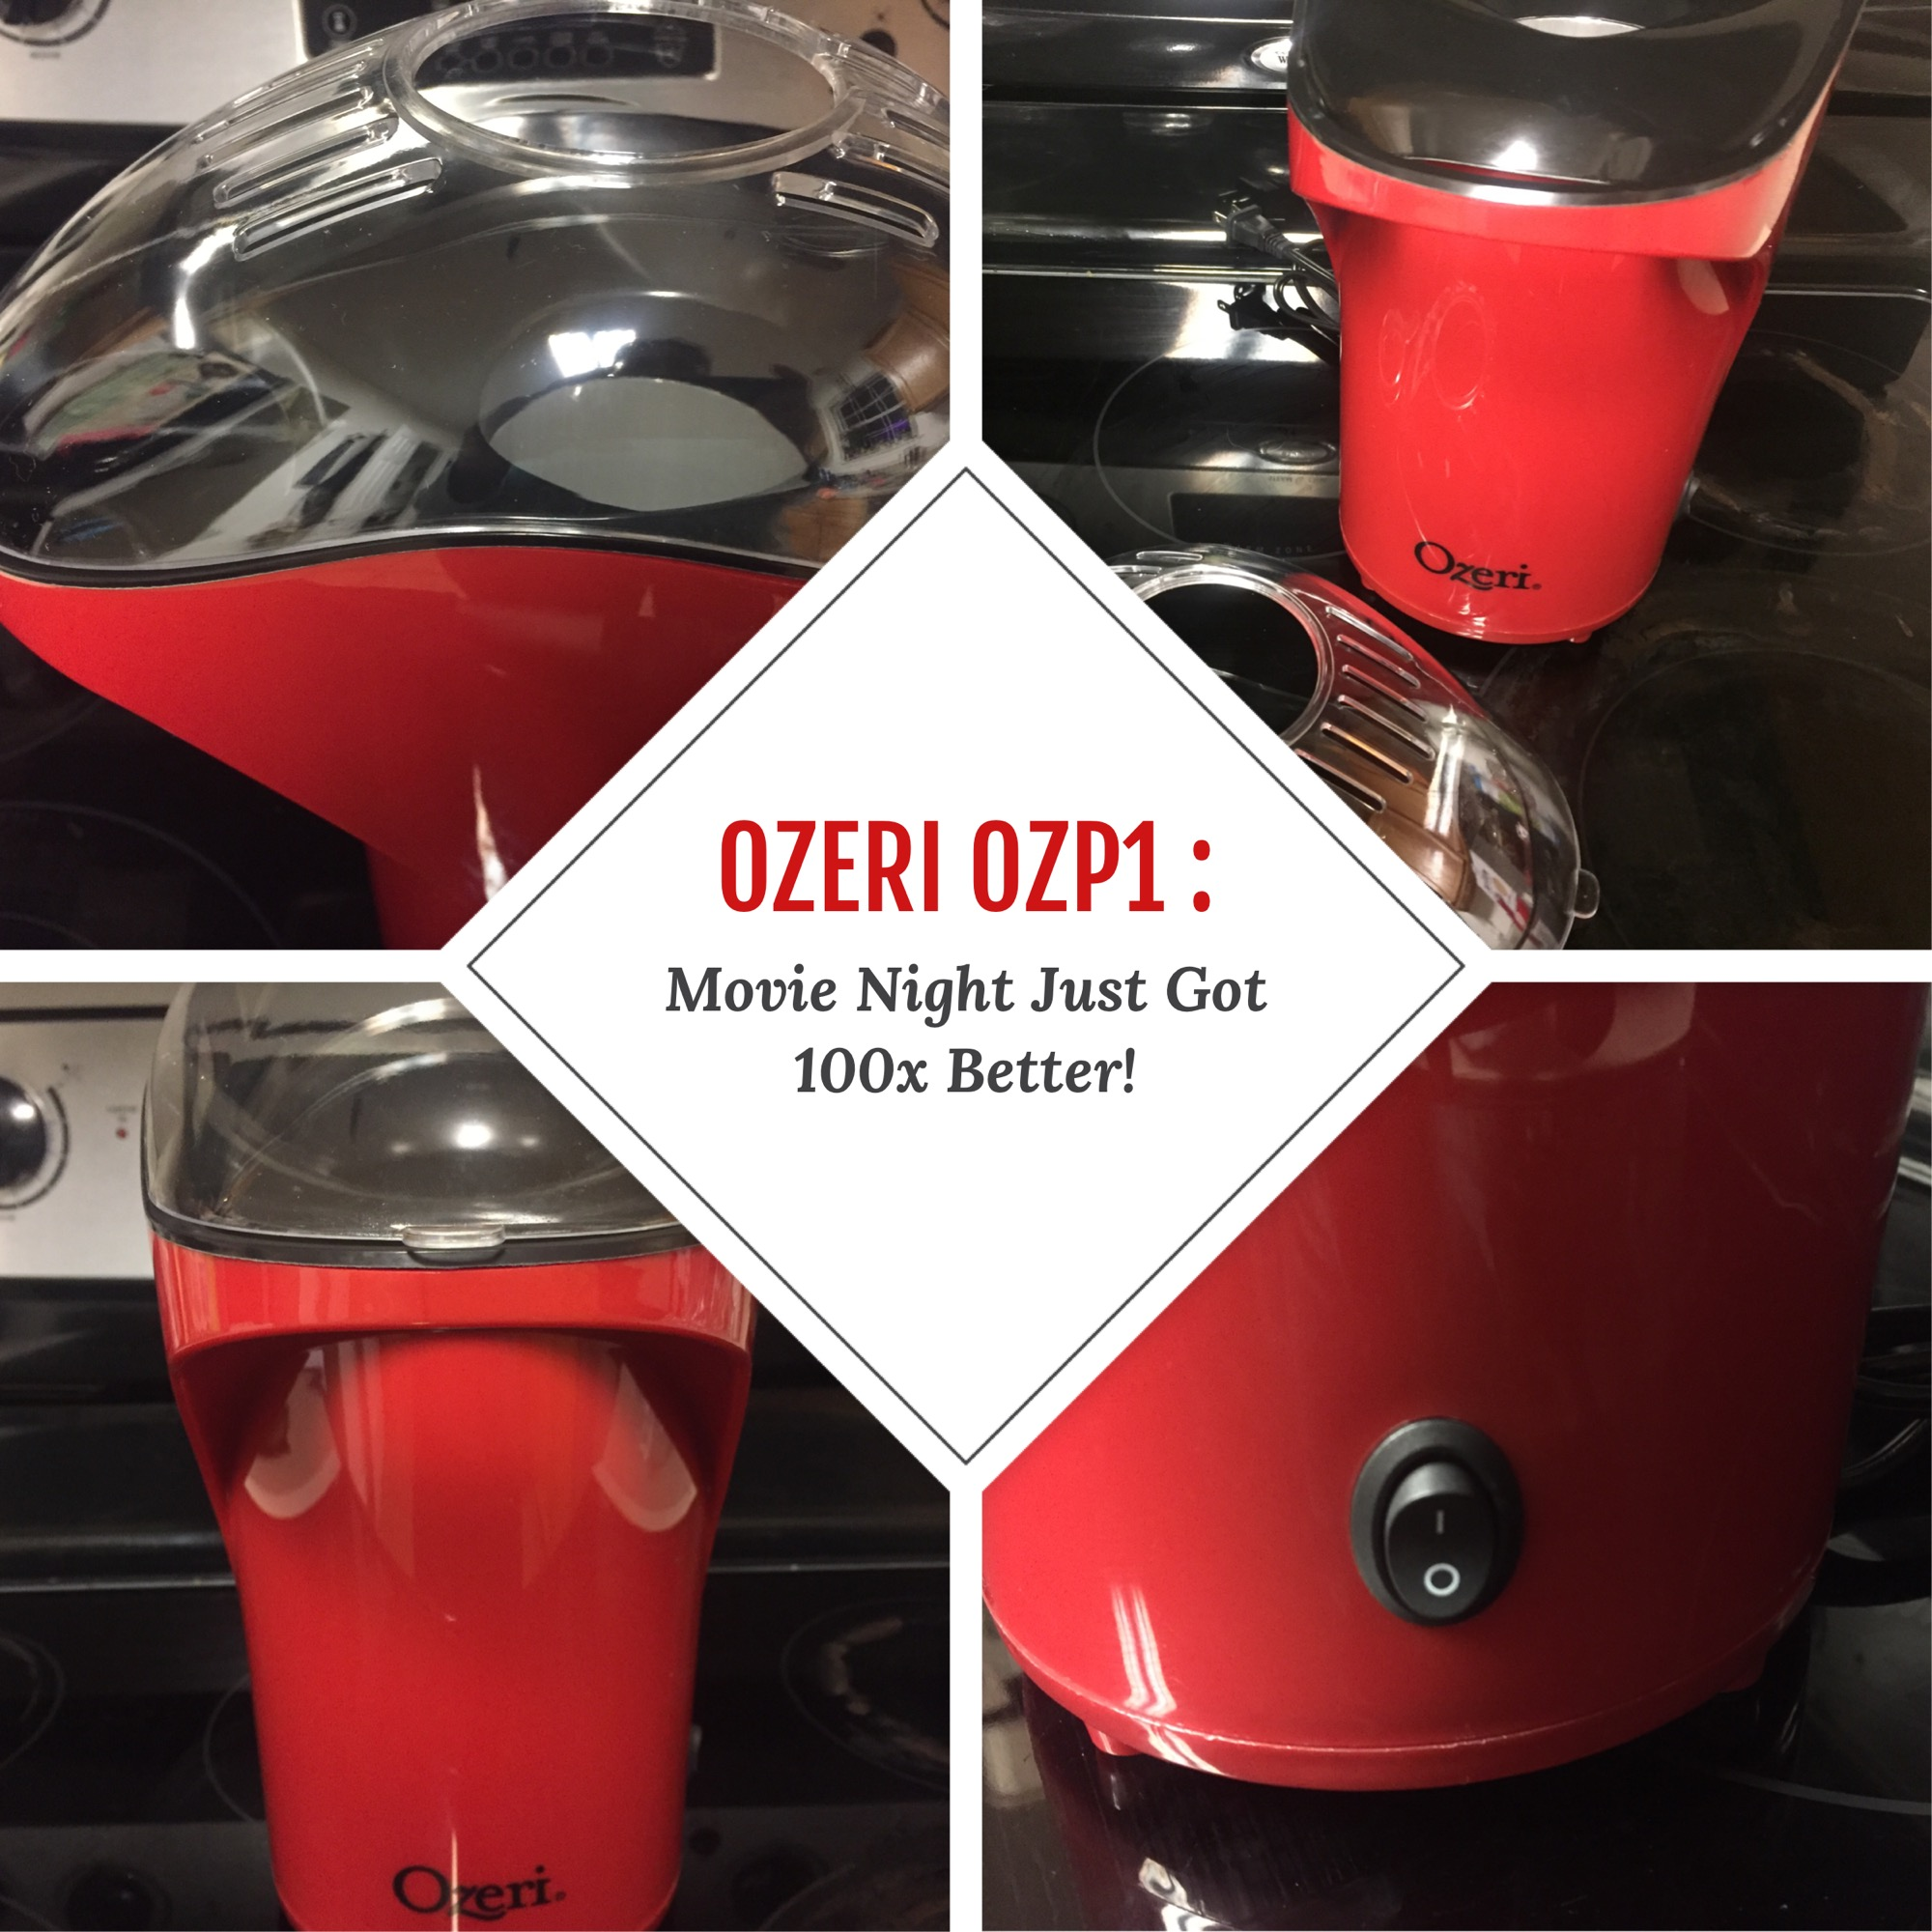 It's Movie Night … Where's the popcorn? It's here with Ozeri !